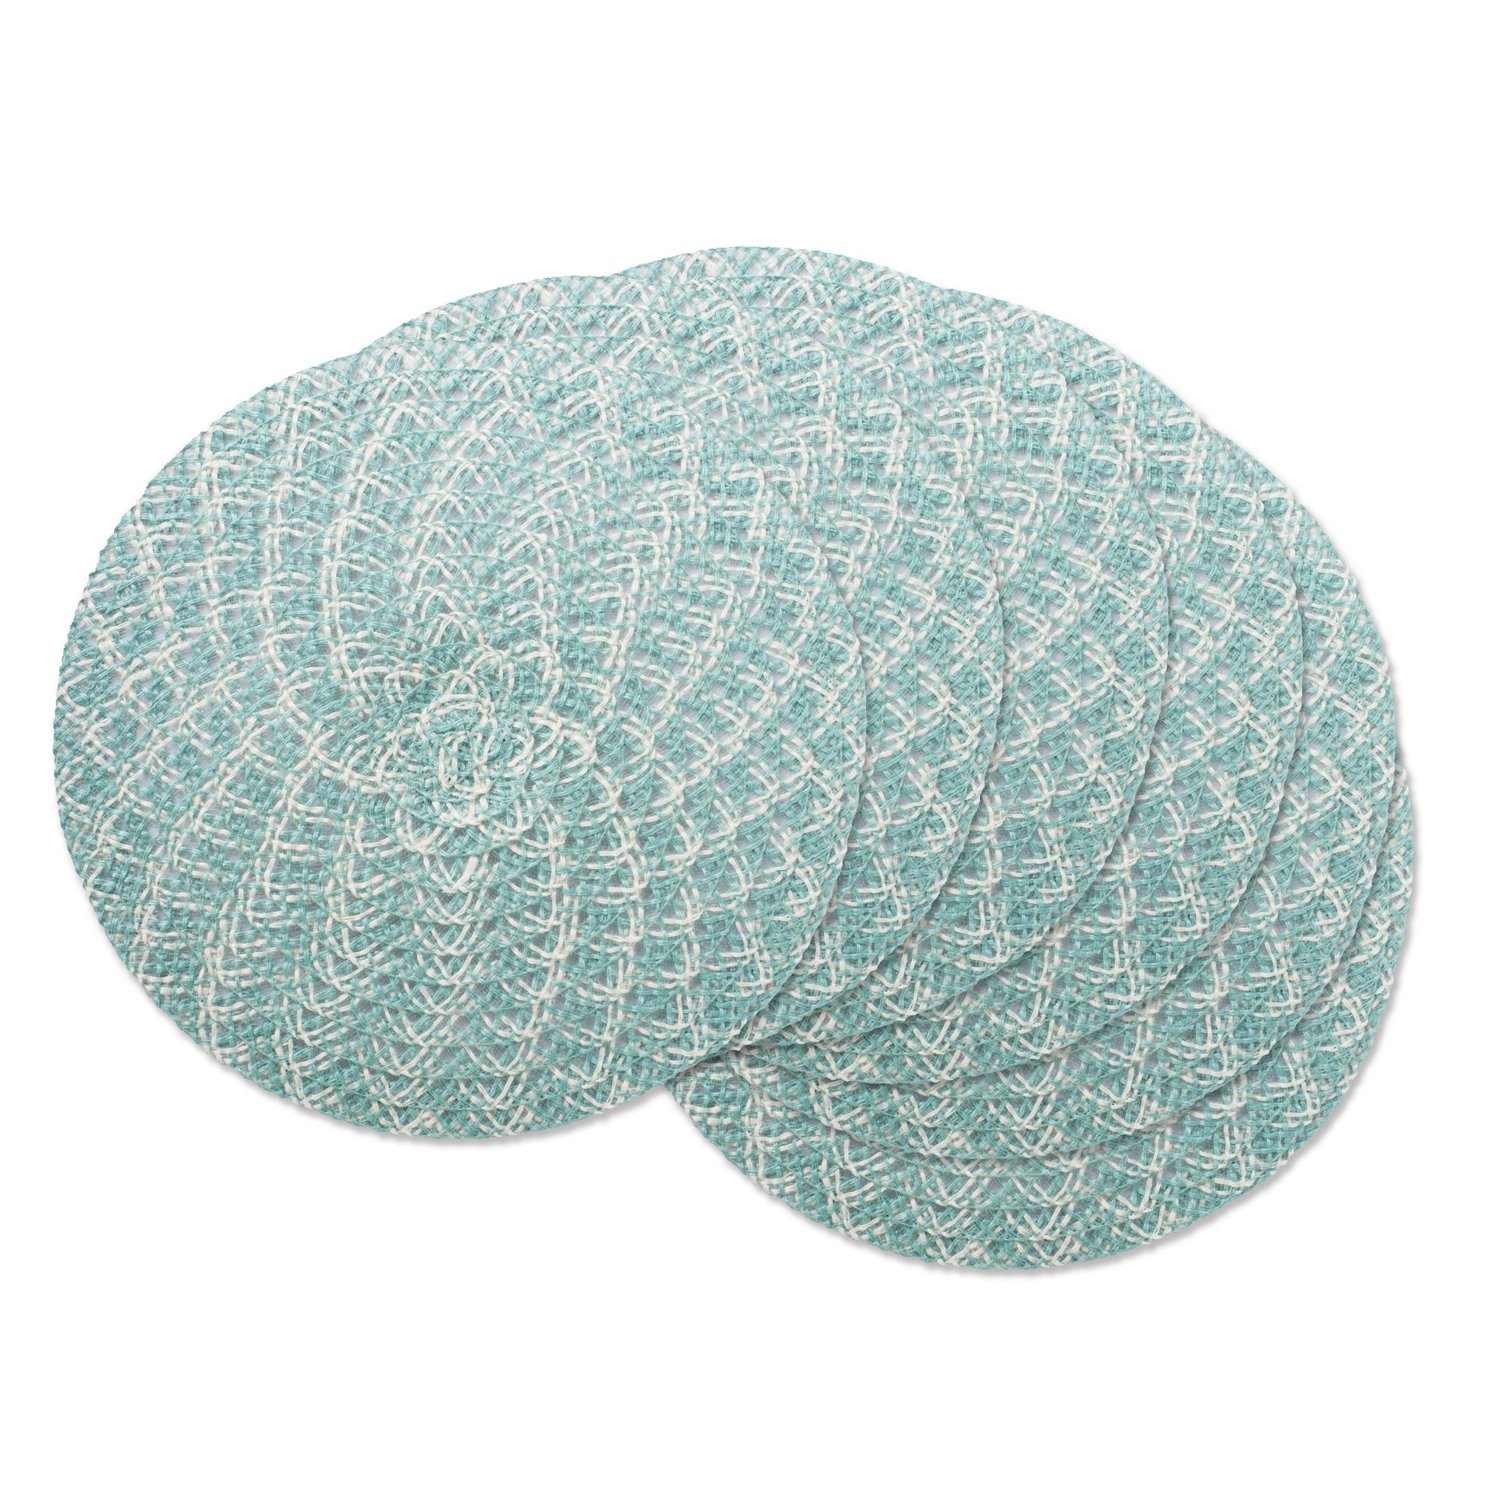 DII Round Woven, Indoor & Outdoor Braided Placemat or Charger, Set of 6, Garden Spa